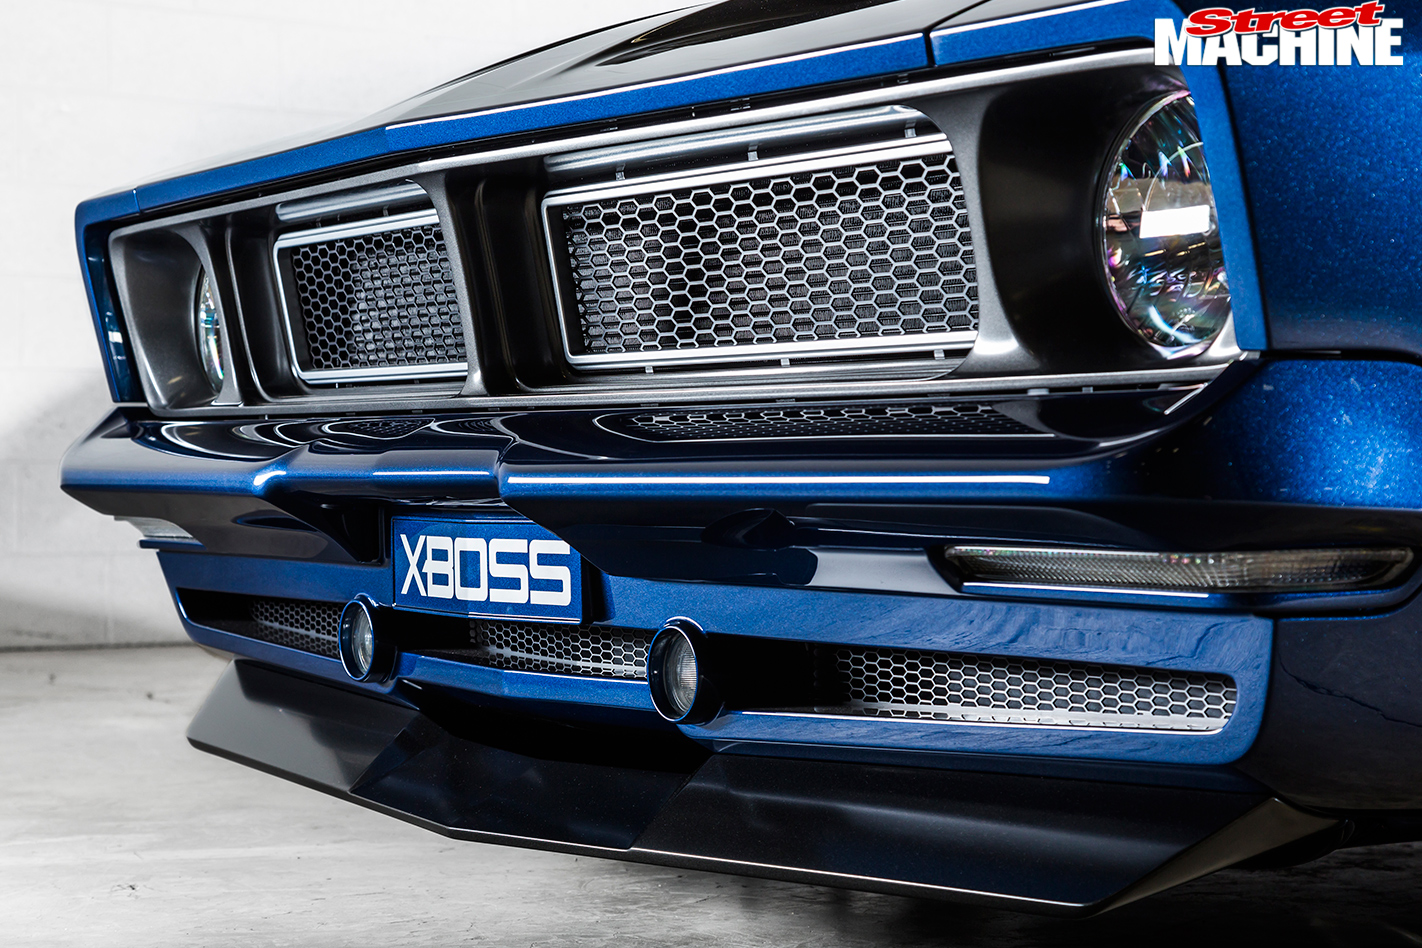 Falcon -XB-coupe -XBOSS-front -grille